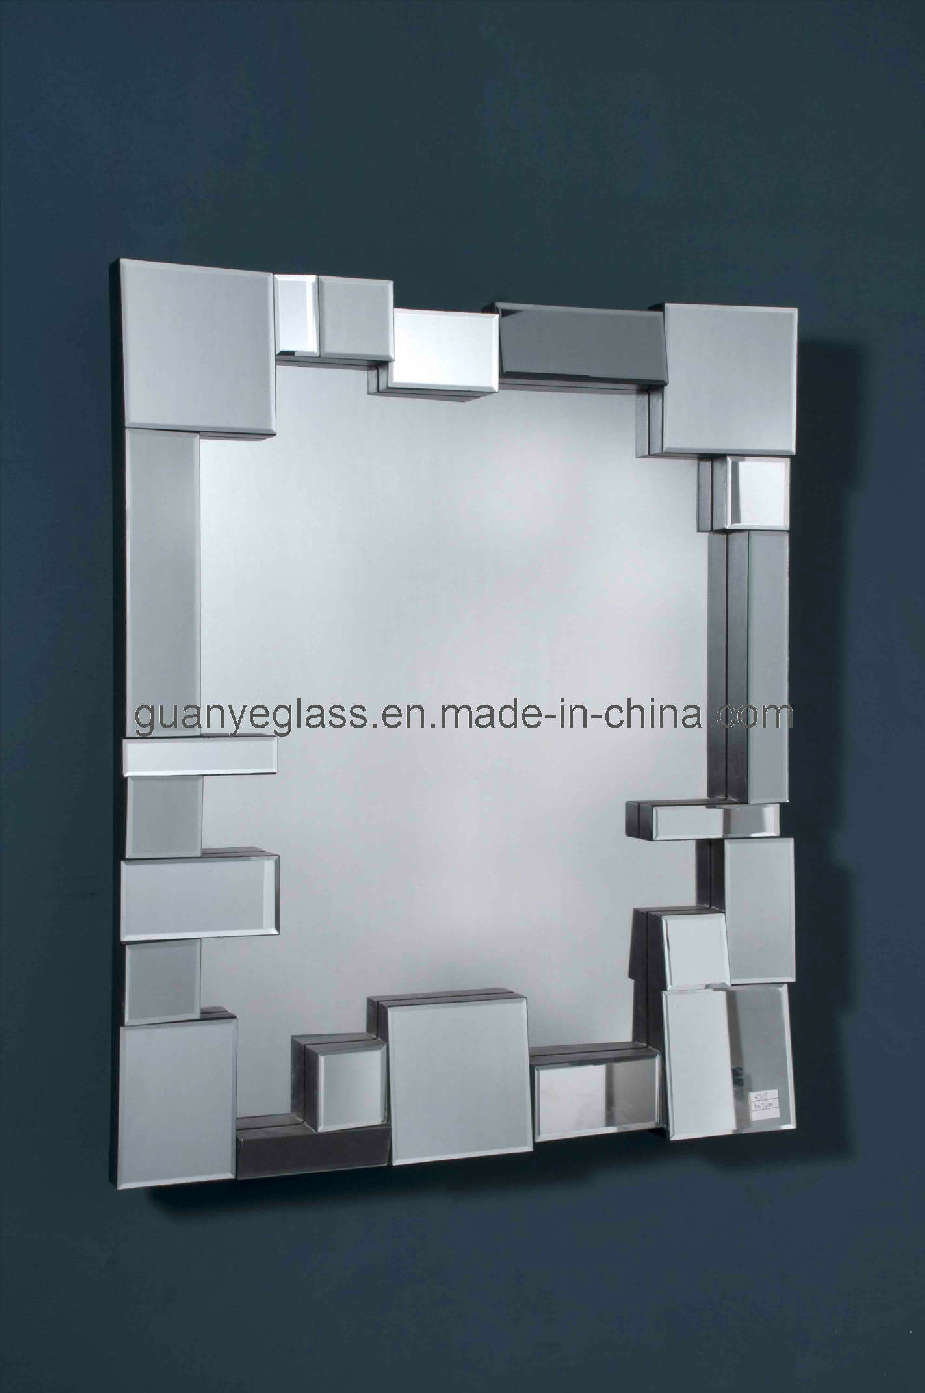 Miroir moderne de jisaw d 39 espace libre de m tier de main for Miroir in english